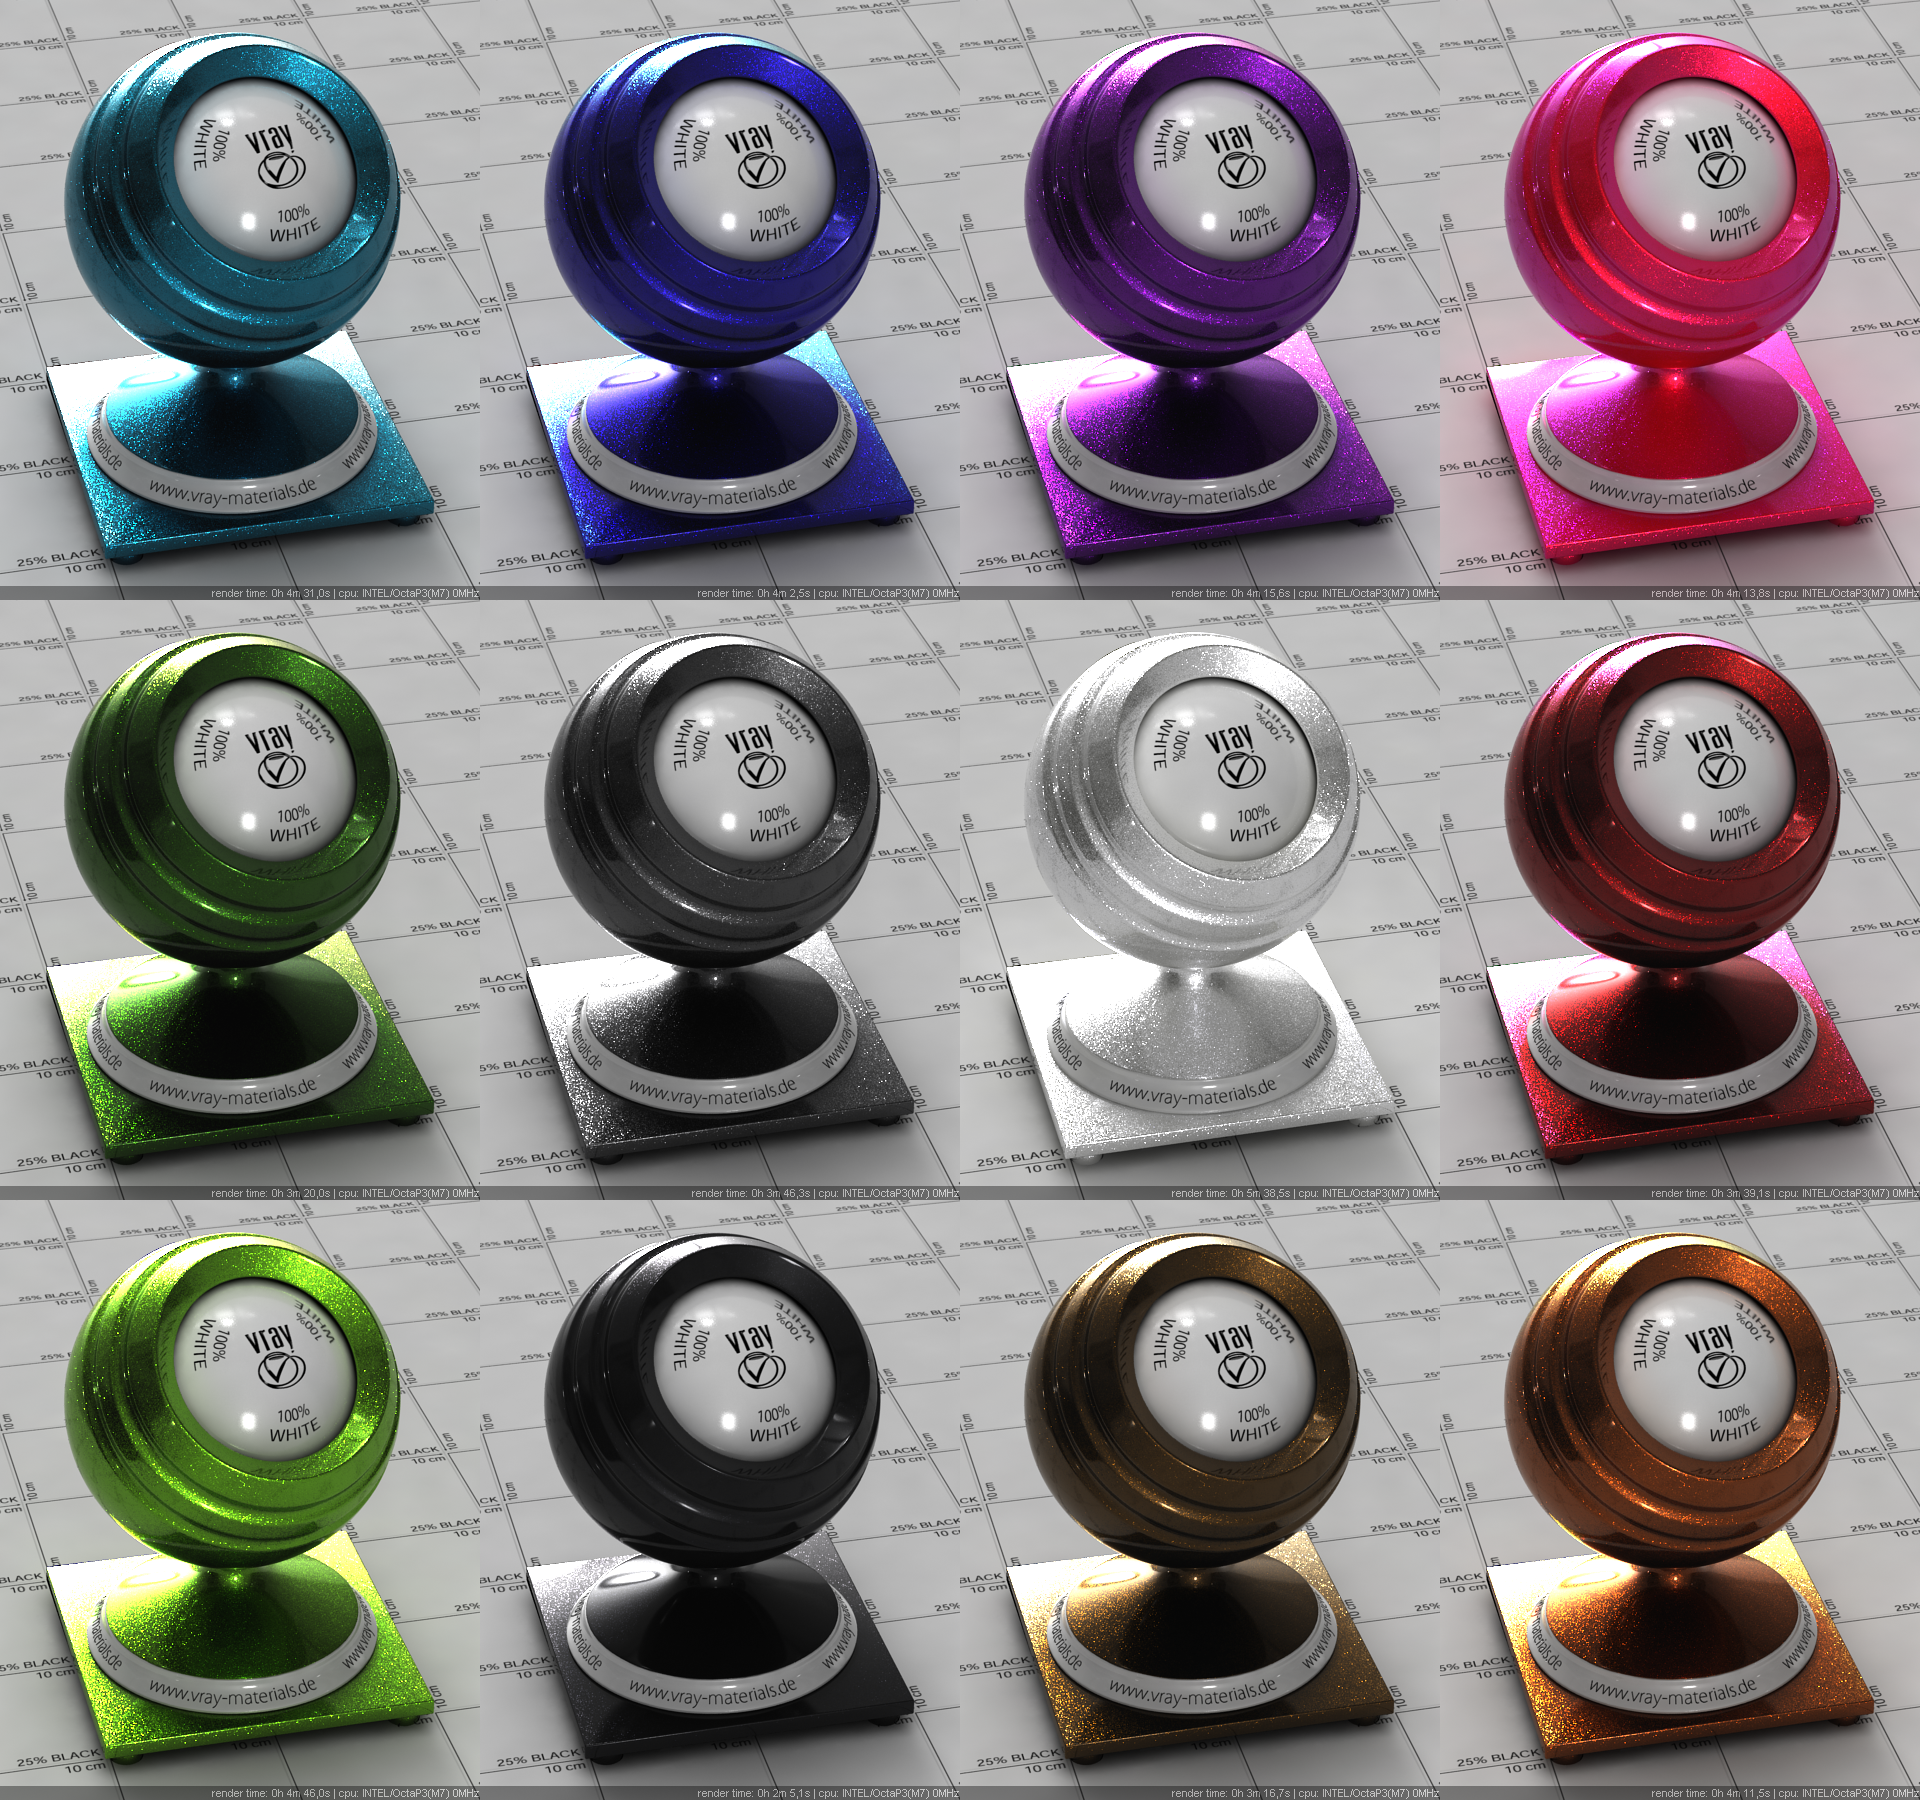 Vray materials for 3ds max 2011 free download | FREE 3D